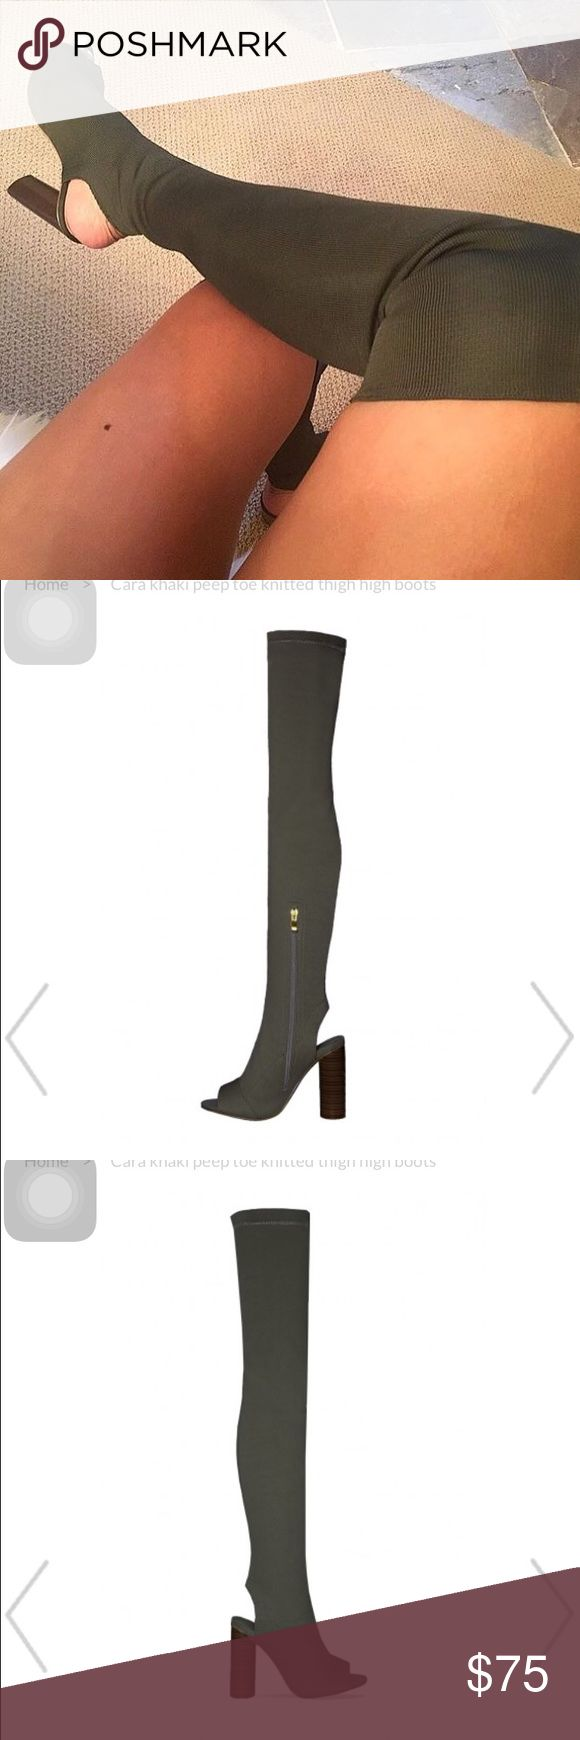 *READ DESCRIPTION* Cara Peep Toe Knit Thigh High Cara Peep Toe Knit Thigh High Boots. First picture is of the Yeezy season 3 boots, but these boots are a duplicate! Super cute and original brand is Public Desire UK. Never worn, great condition. Price is firm No trades, no offers! Won't ship TILL NEXT WEEK Missguided Shoes Over the Knee Boots